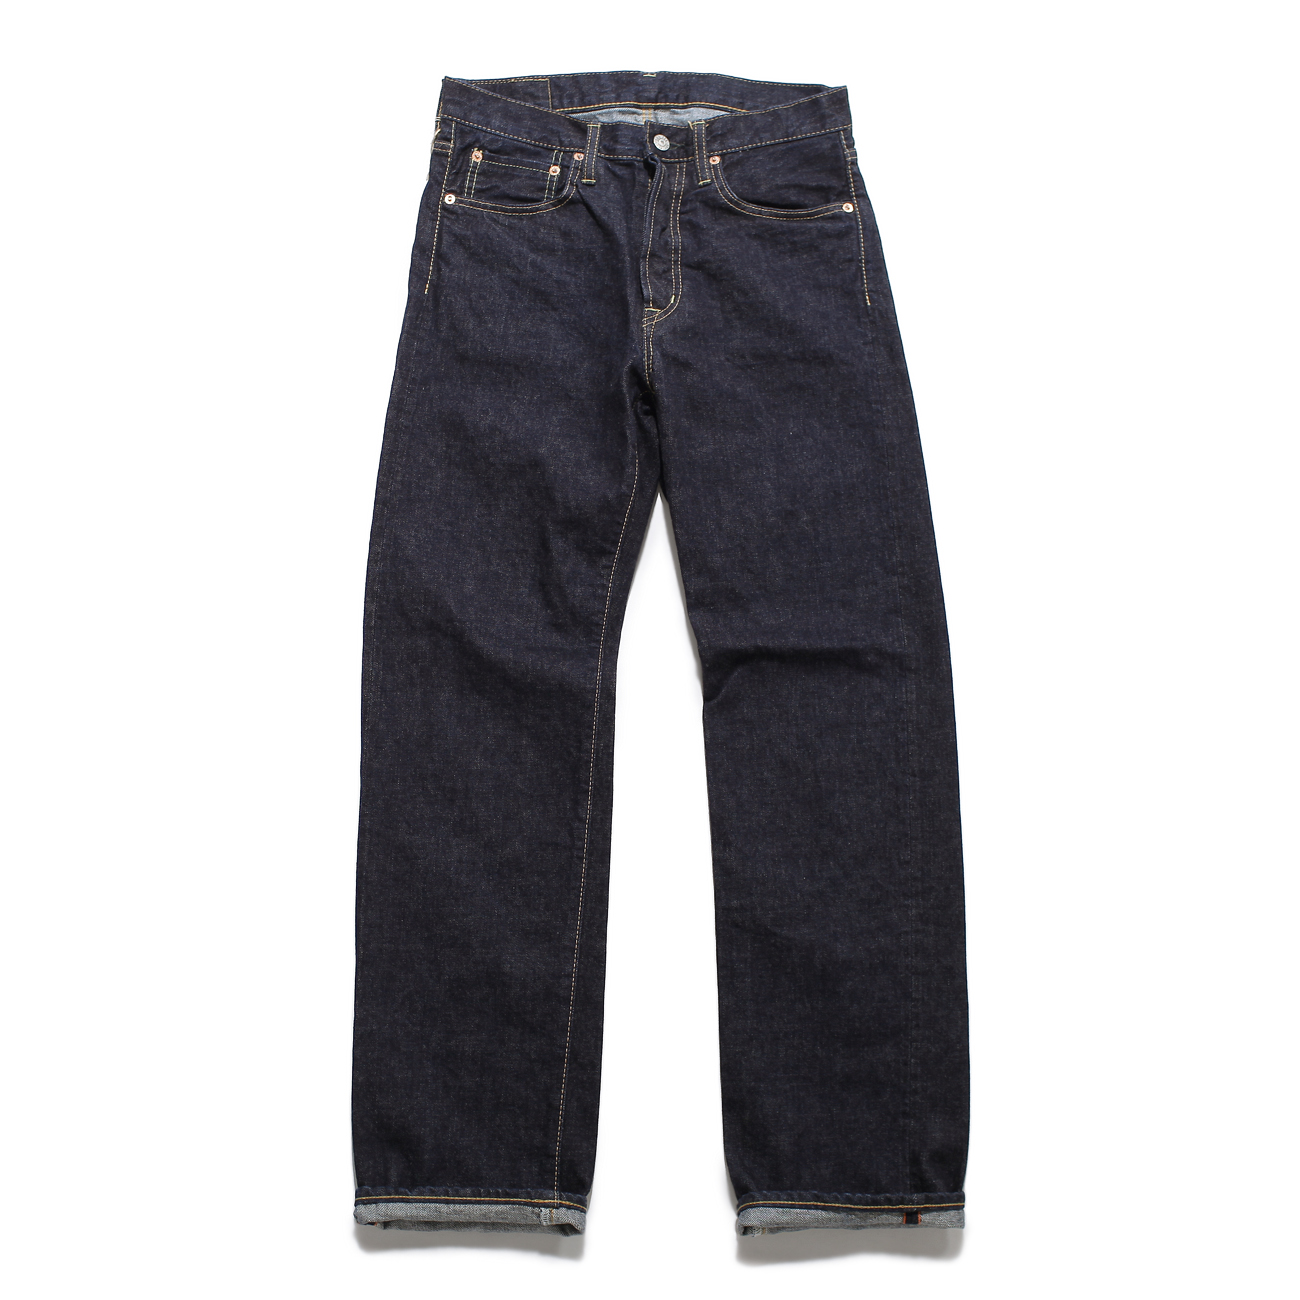 5P Standard Straight Jeans